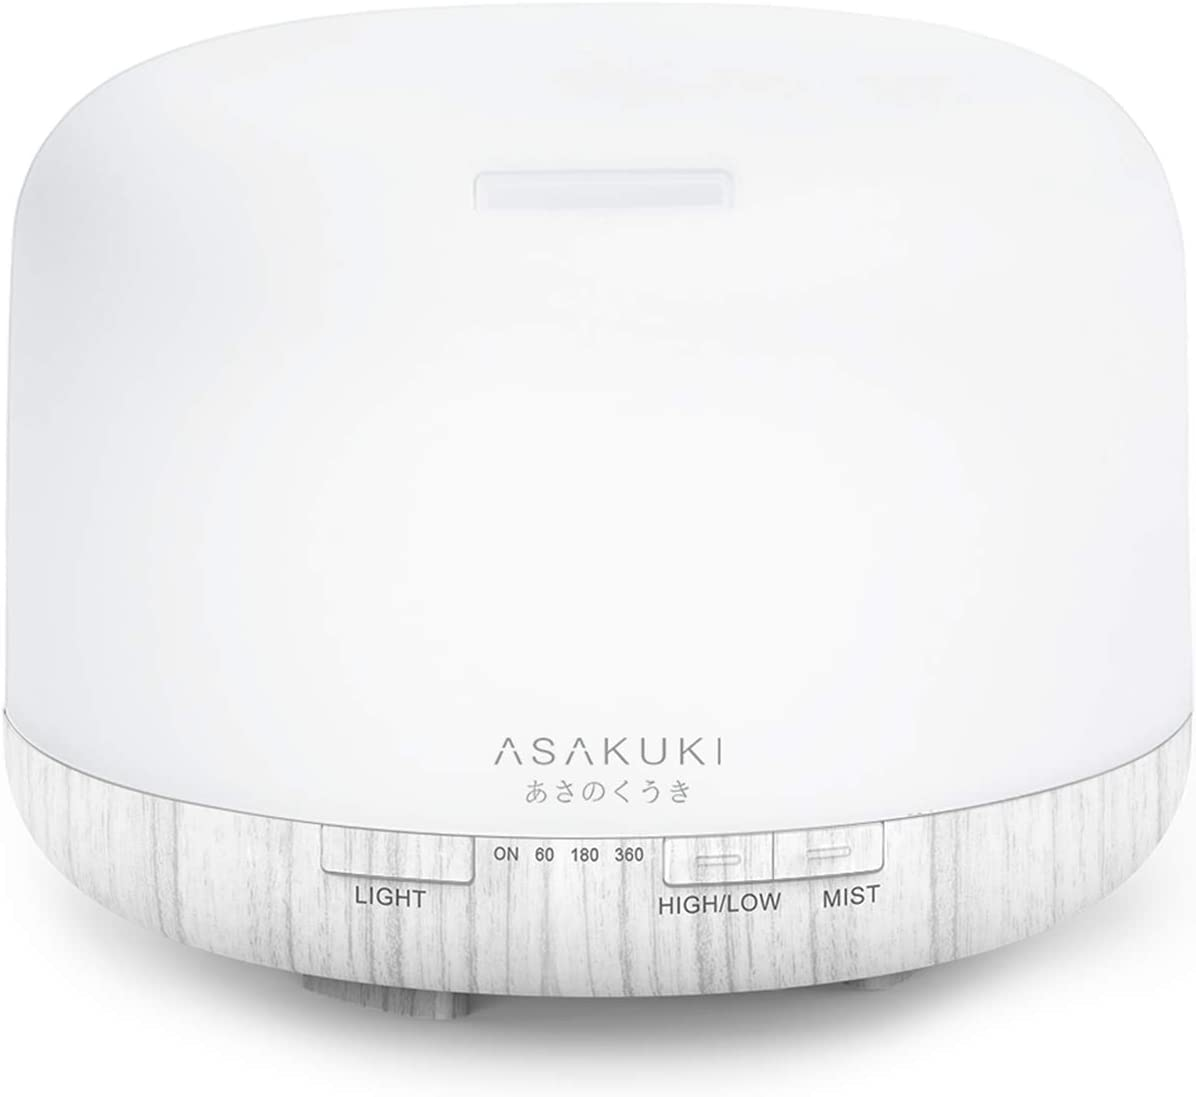 ASAKUKI 500ml Premium Essential Oil Diffuser, 5 In 1 Ultrasonic Aromatherapy Fragrant Oil Vaporizer Humidifier, Purifies The Air, Timer and Auto Off